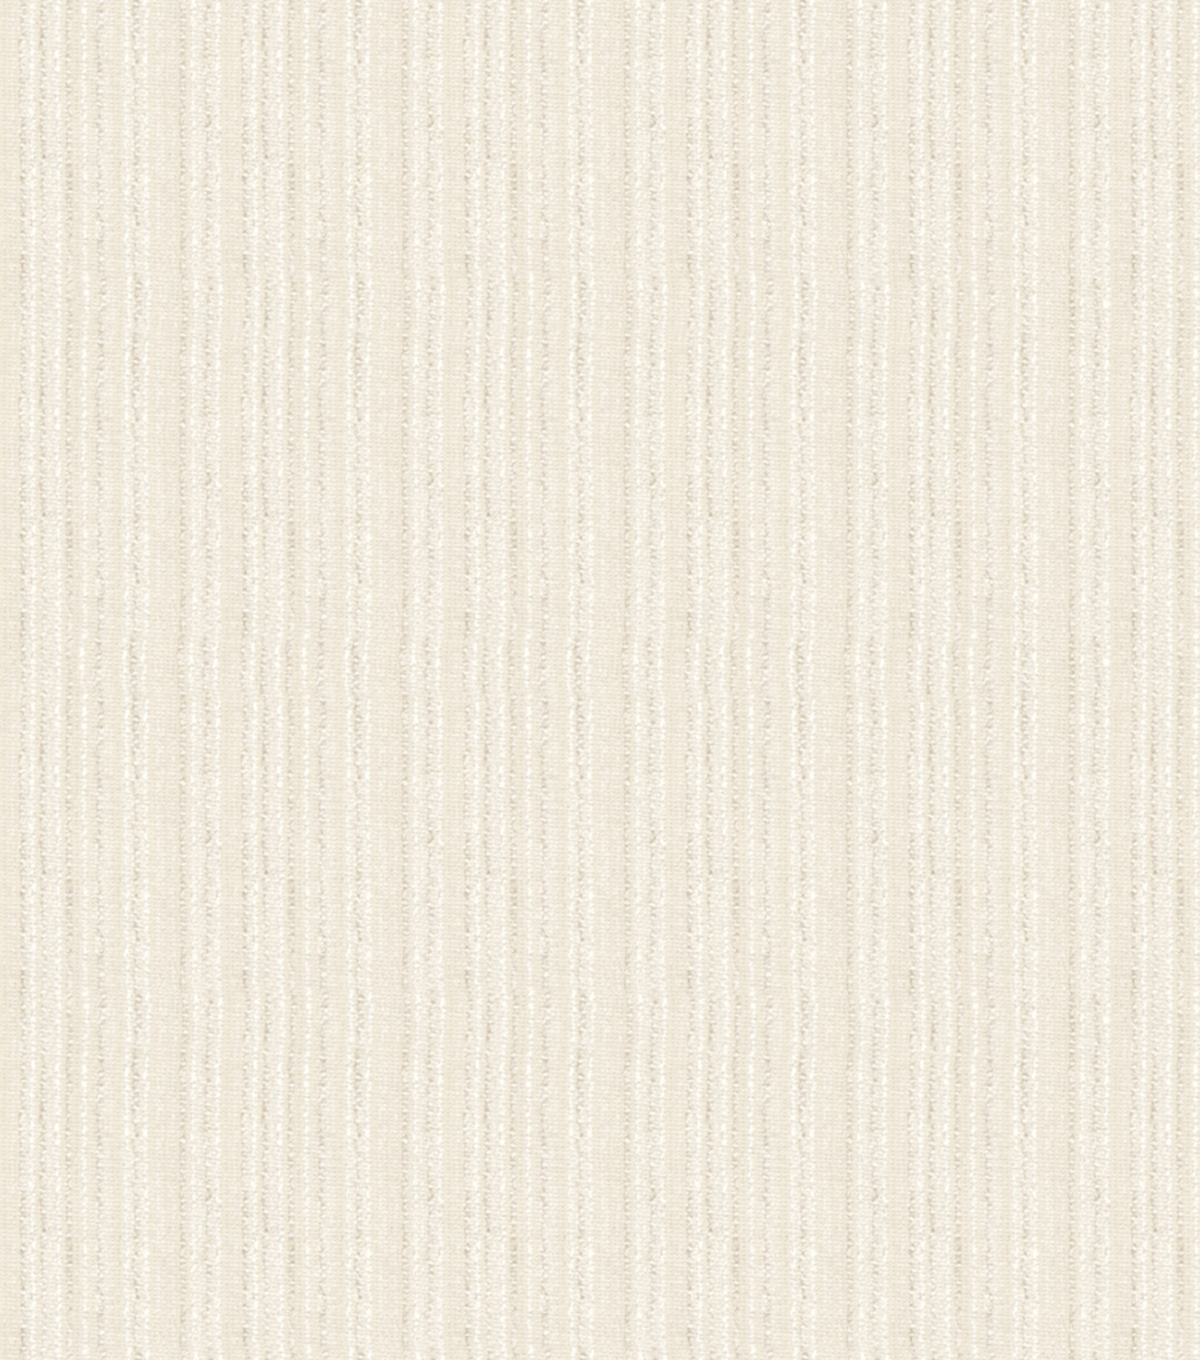 Home Decor 8\u0022x8\u0022 Fabric Swatch-Eaton Square Avon Cream